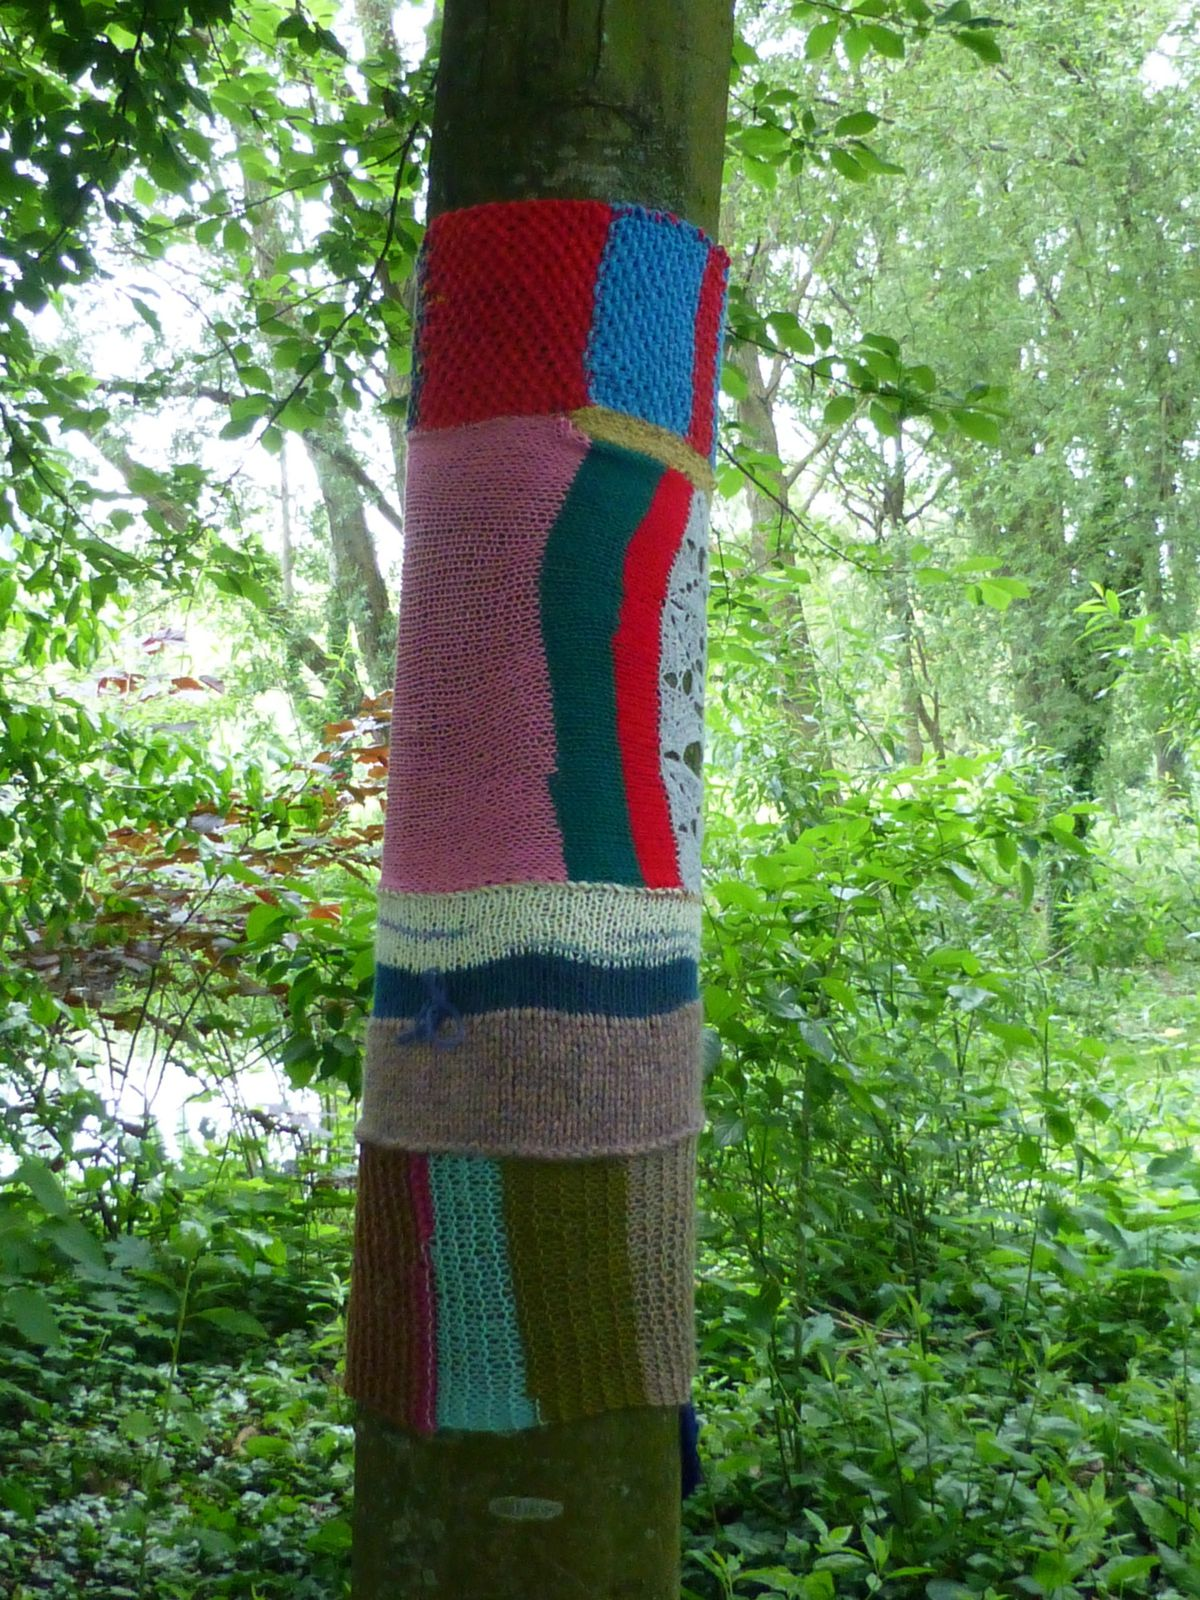 Tree art or yarn bombing